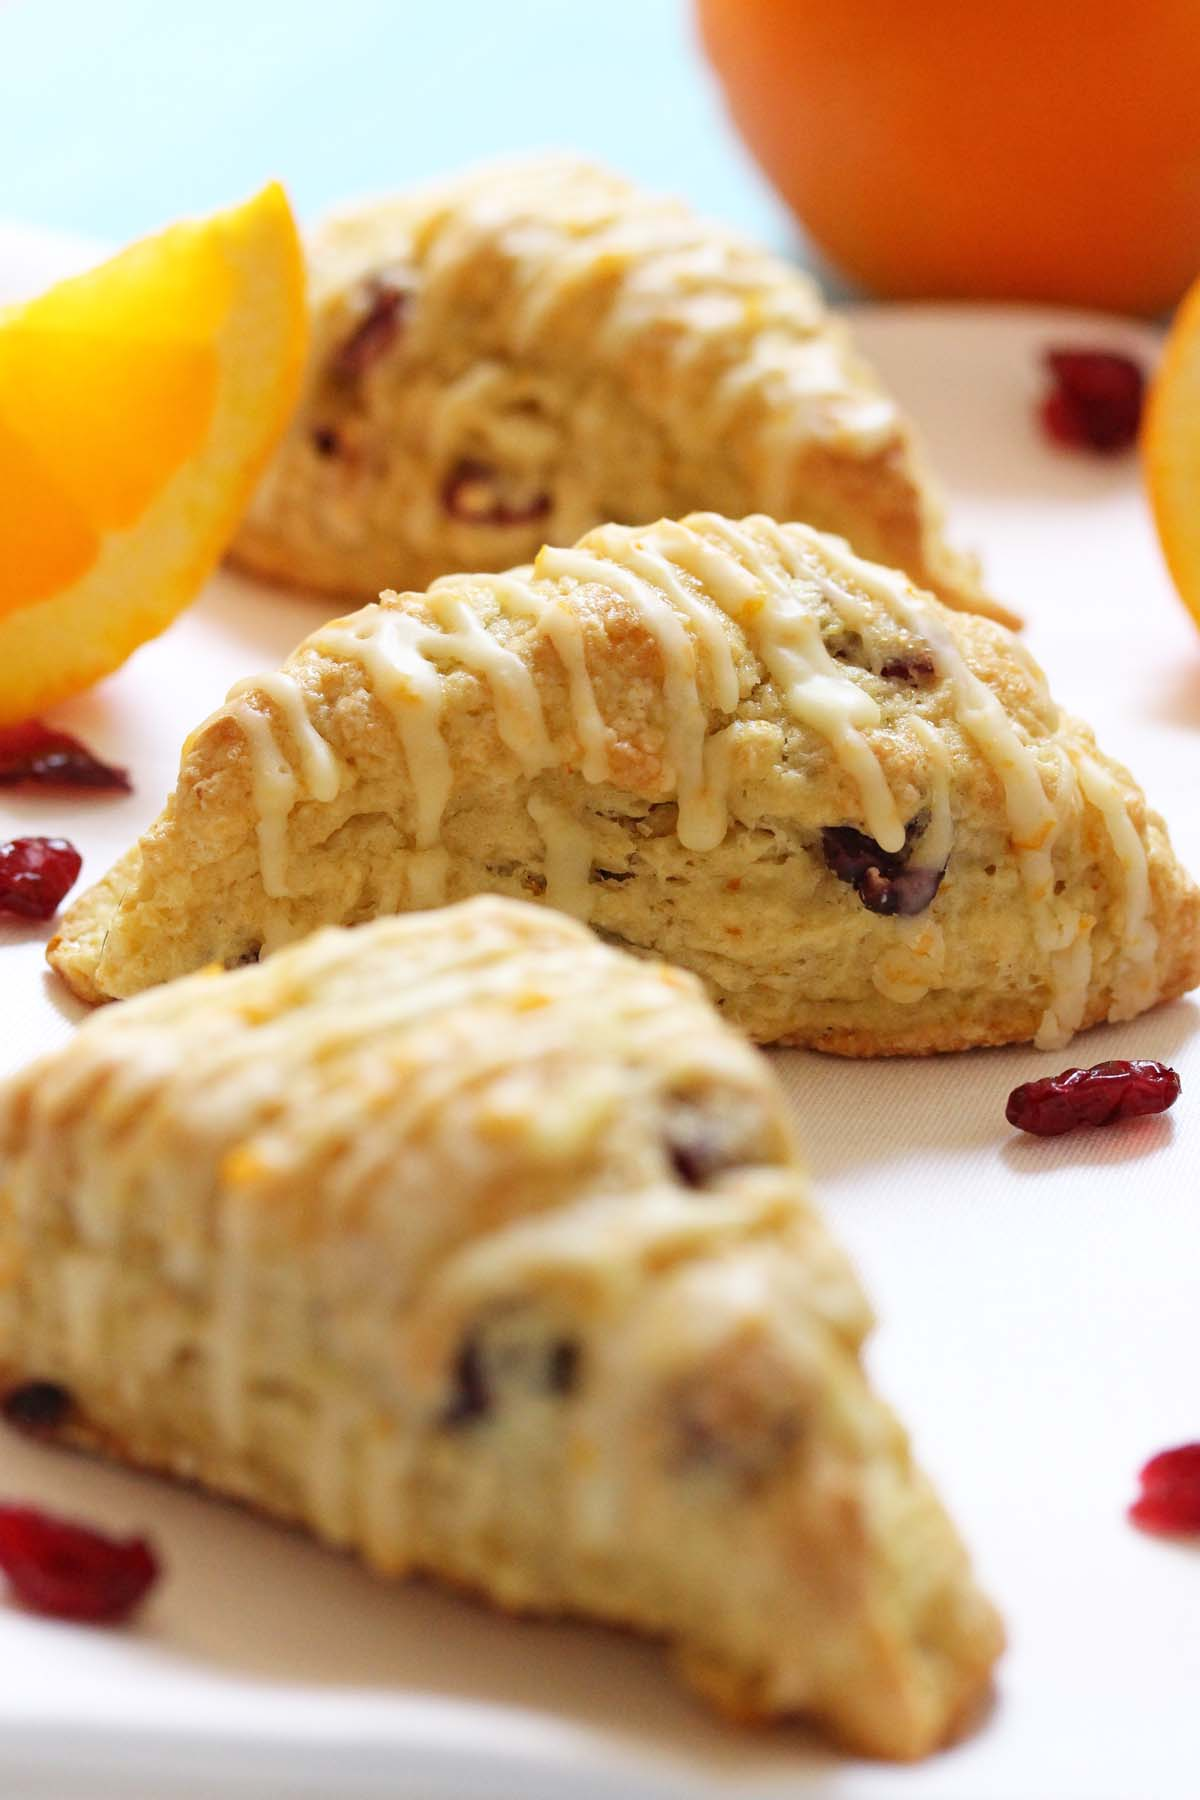 Cranberry+Orange+Scone Cranberry Orange Scones from Ashley Marie's ...